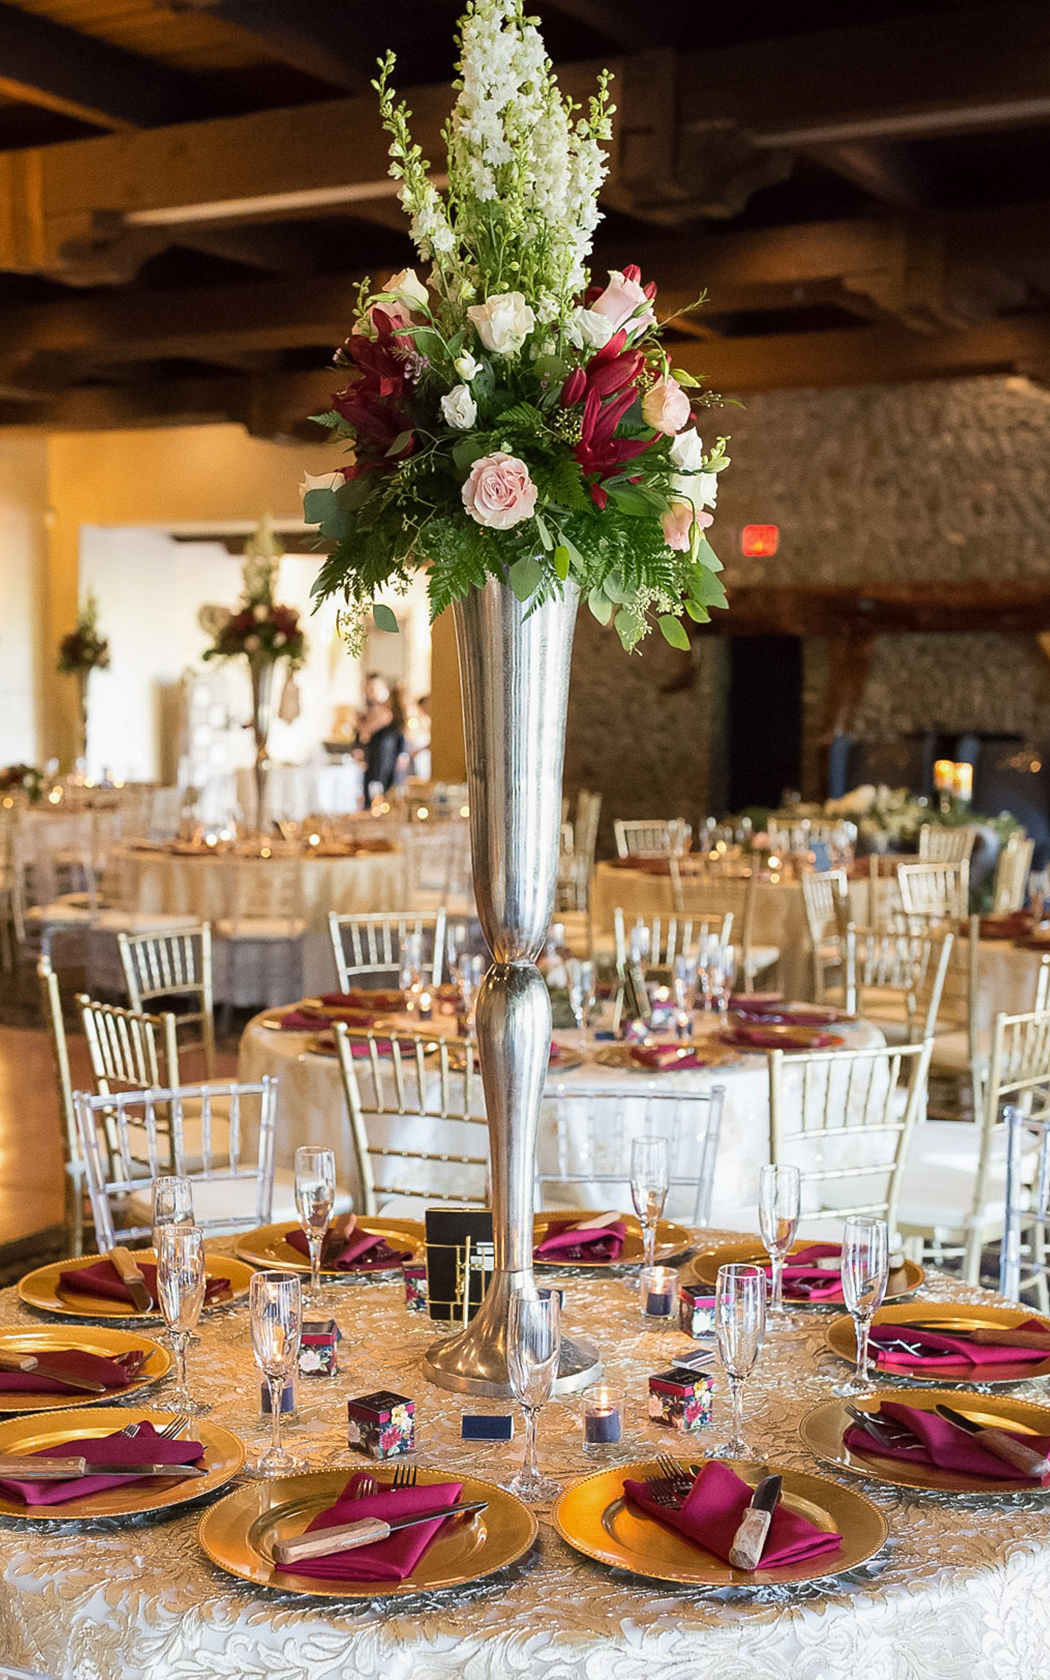 banquet style wedding table set with a tall floral centerpiece